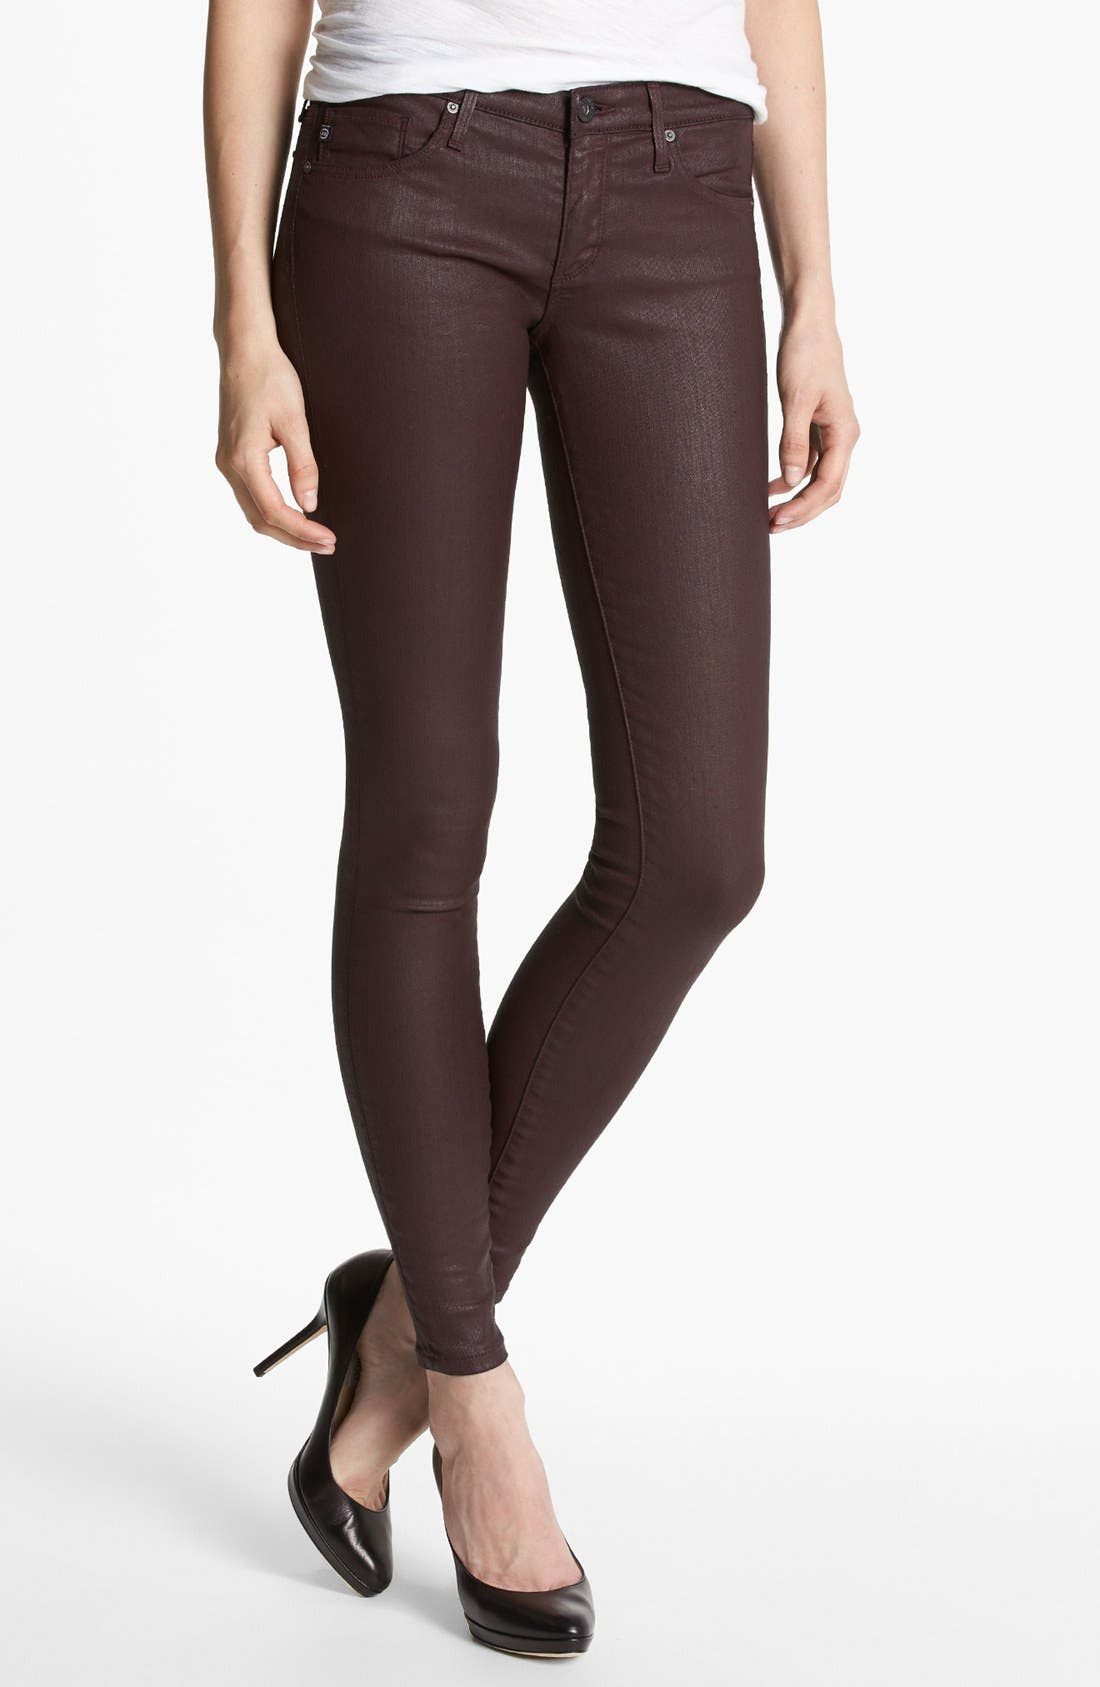 Alternate Image 1 Selected - AG 'The Absolute Legging' Coated Skinny Jeans (Brave)